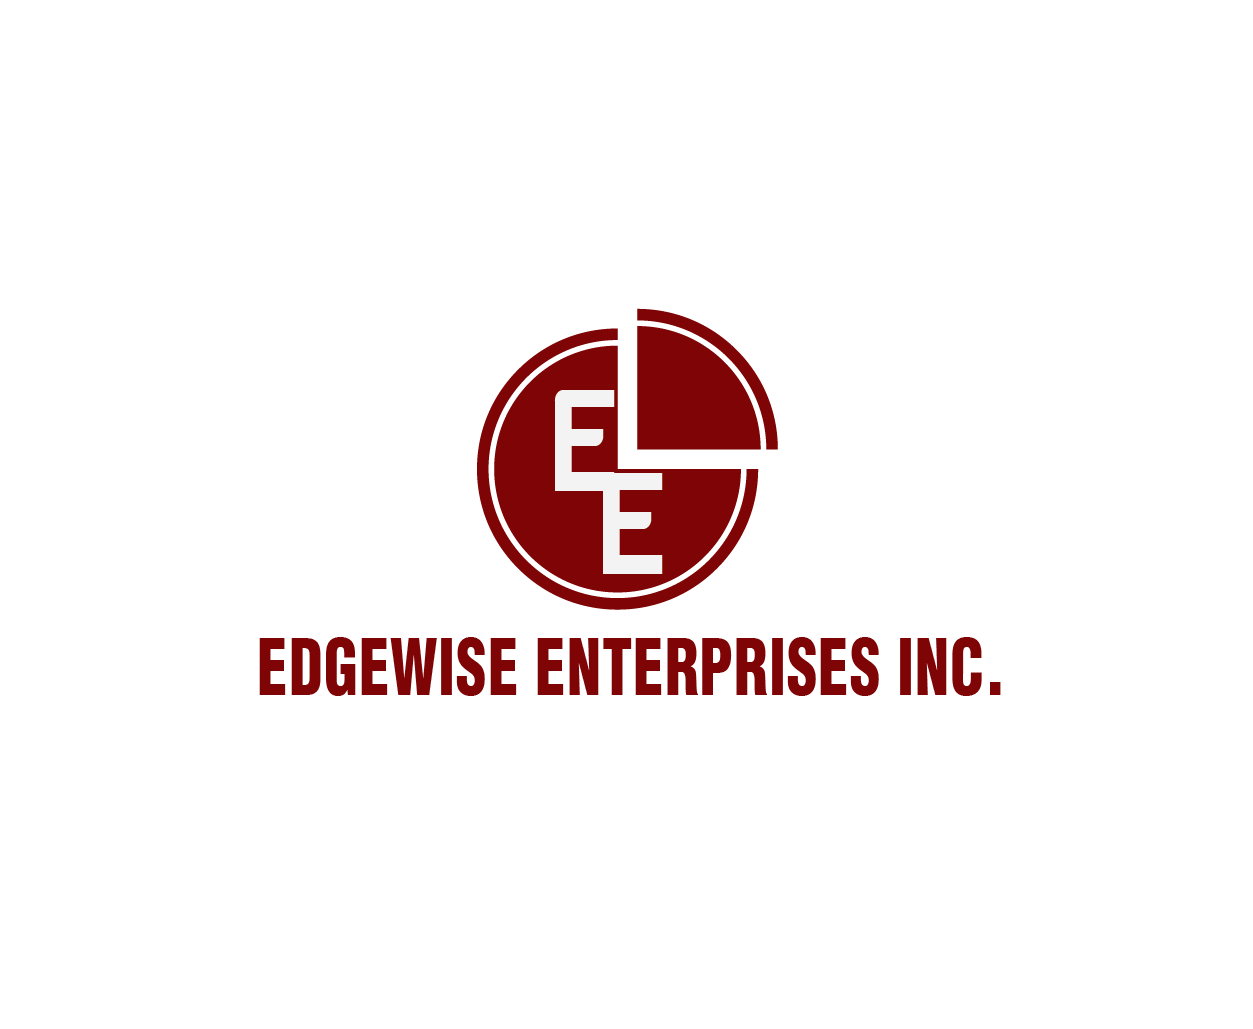 Logo Design by iwyn - Entry No. 63 in the Logo Design Contest New Logo Design for Edgewise Enterprises Inc..